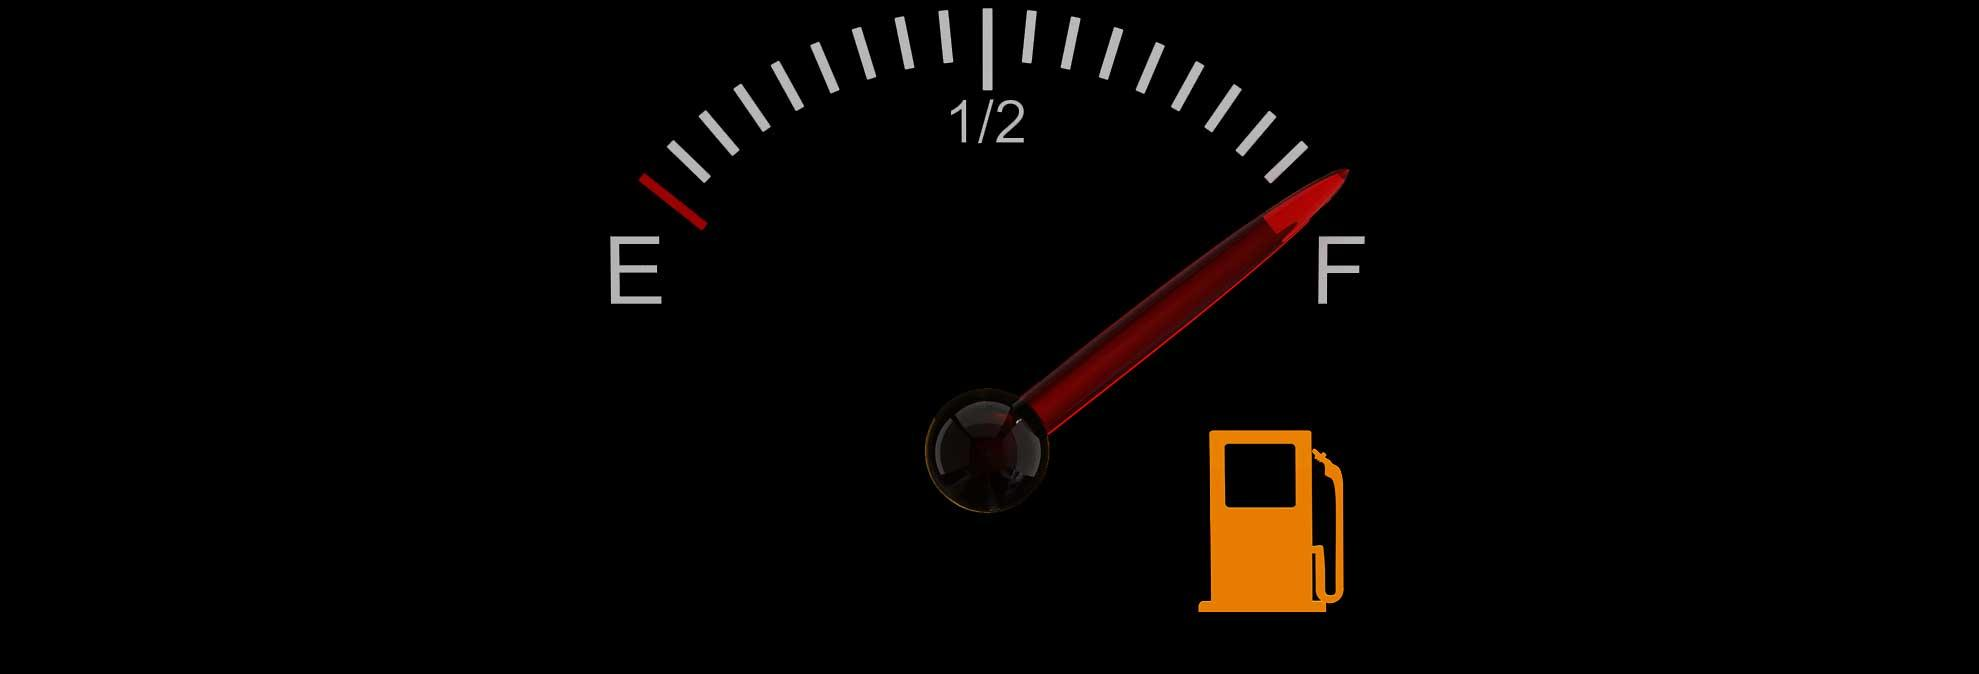 are there downsides to always keeping your gas tank full